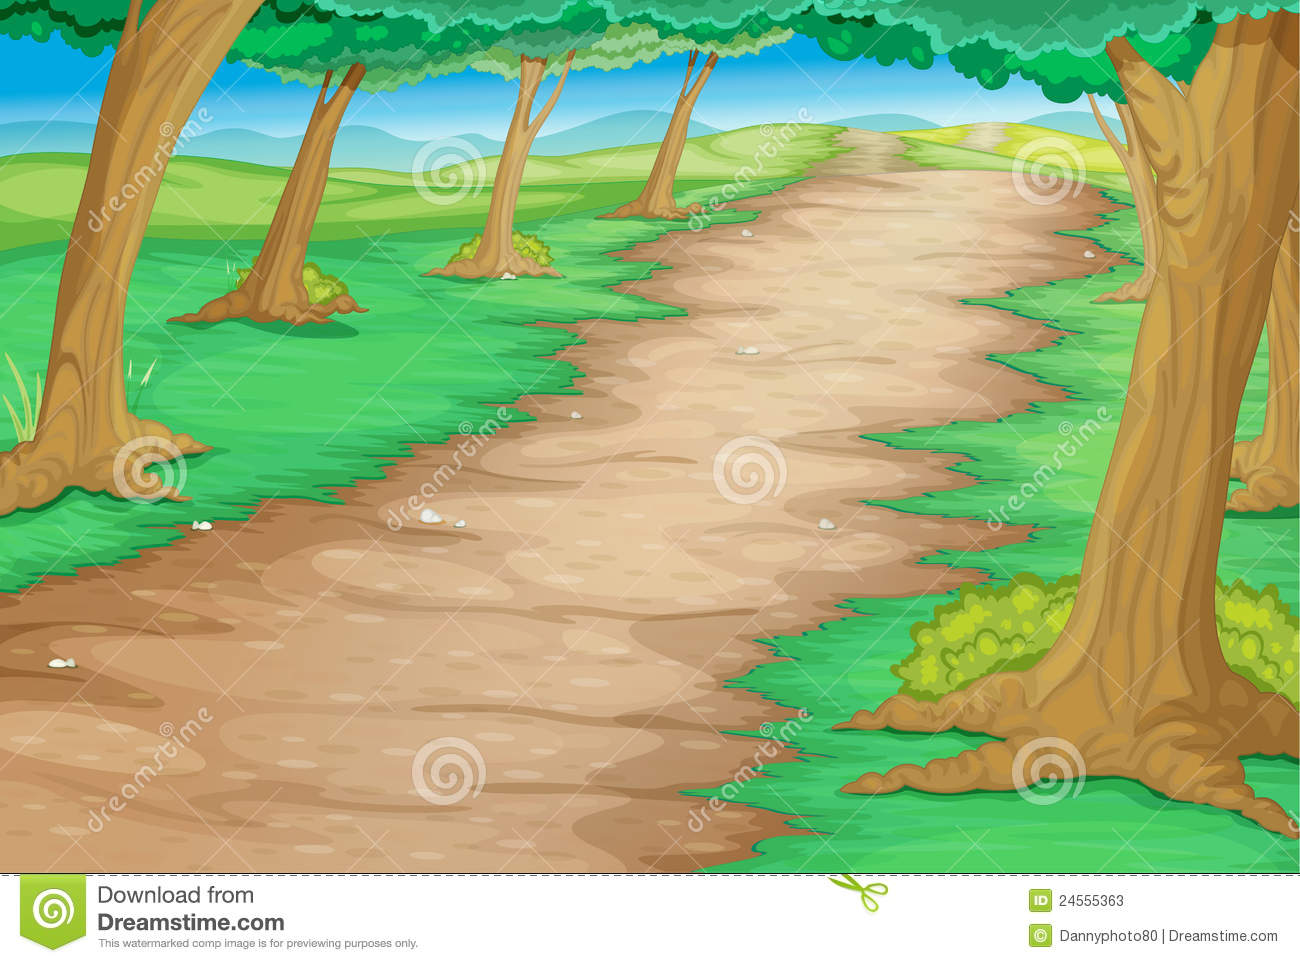 Colorful outline clipart of paths and trails.